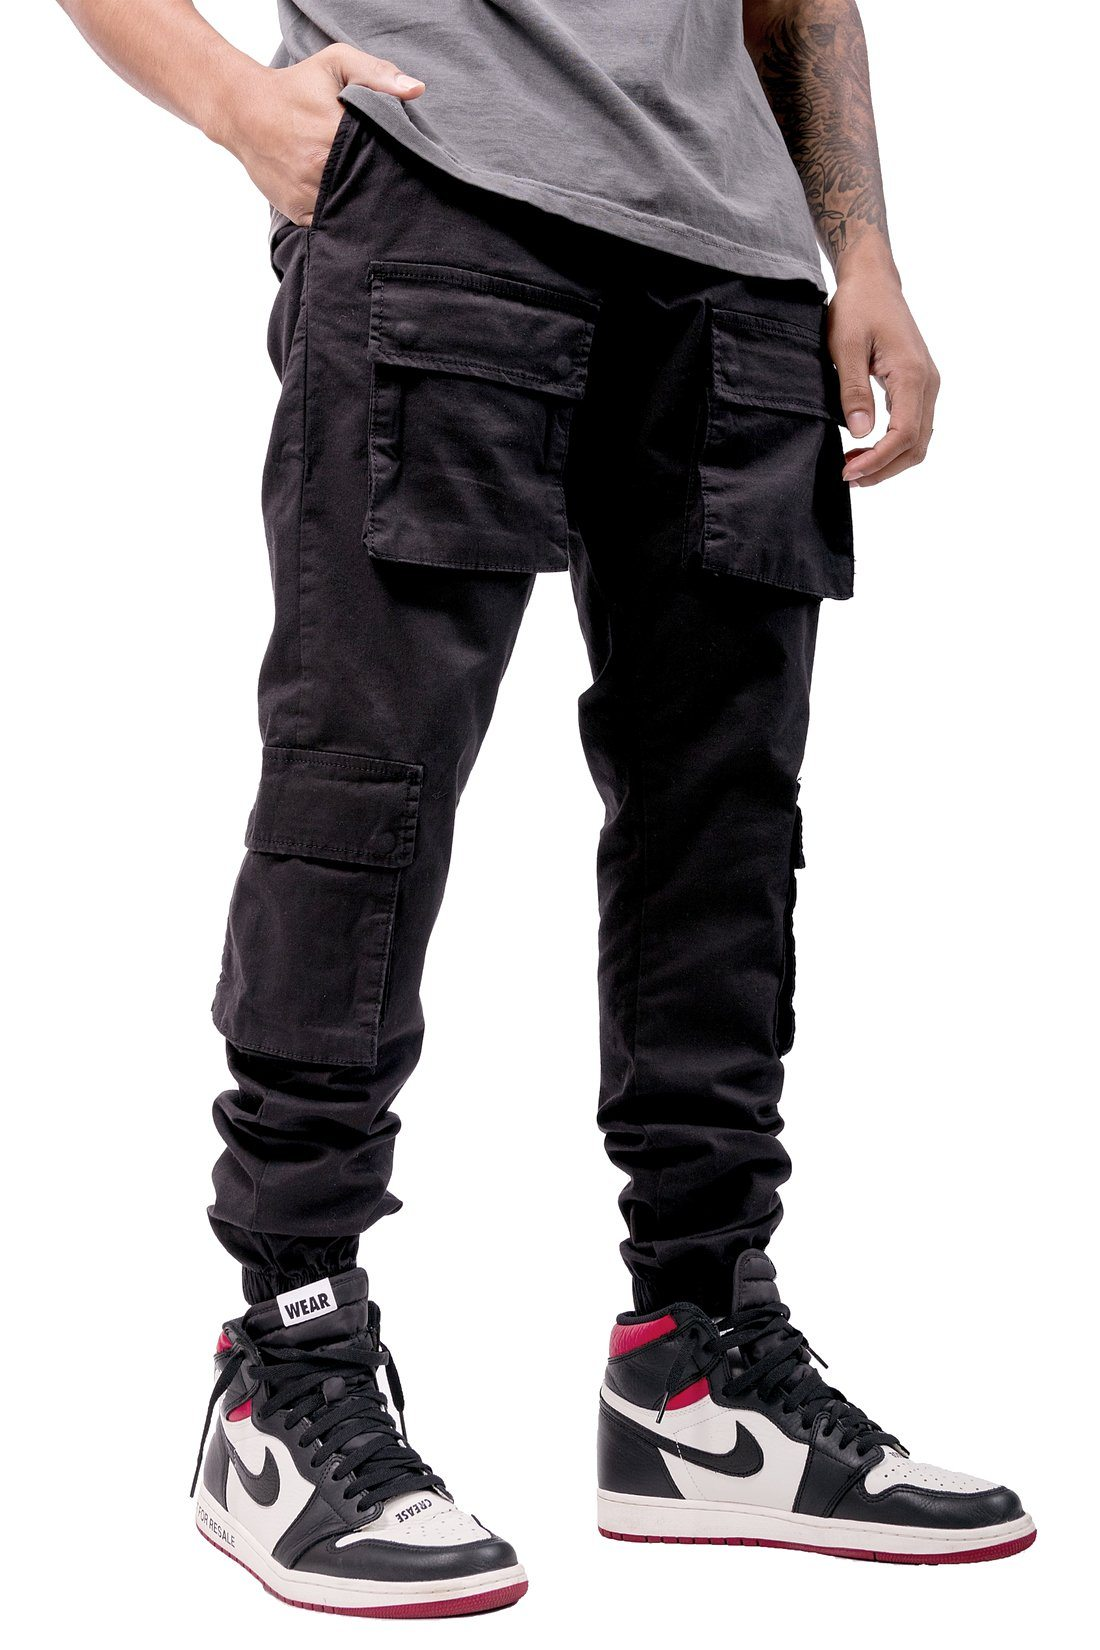 Lyon Cargo Pants Black